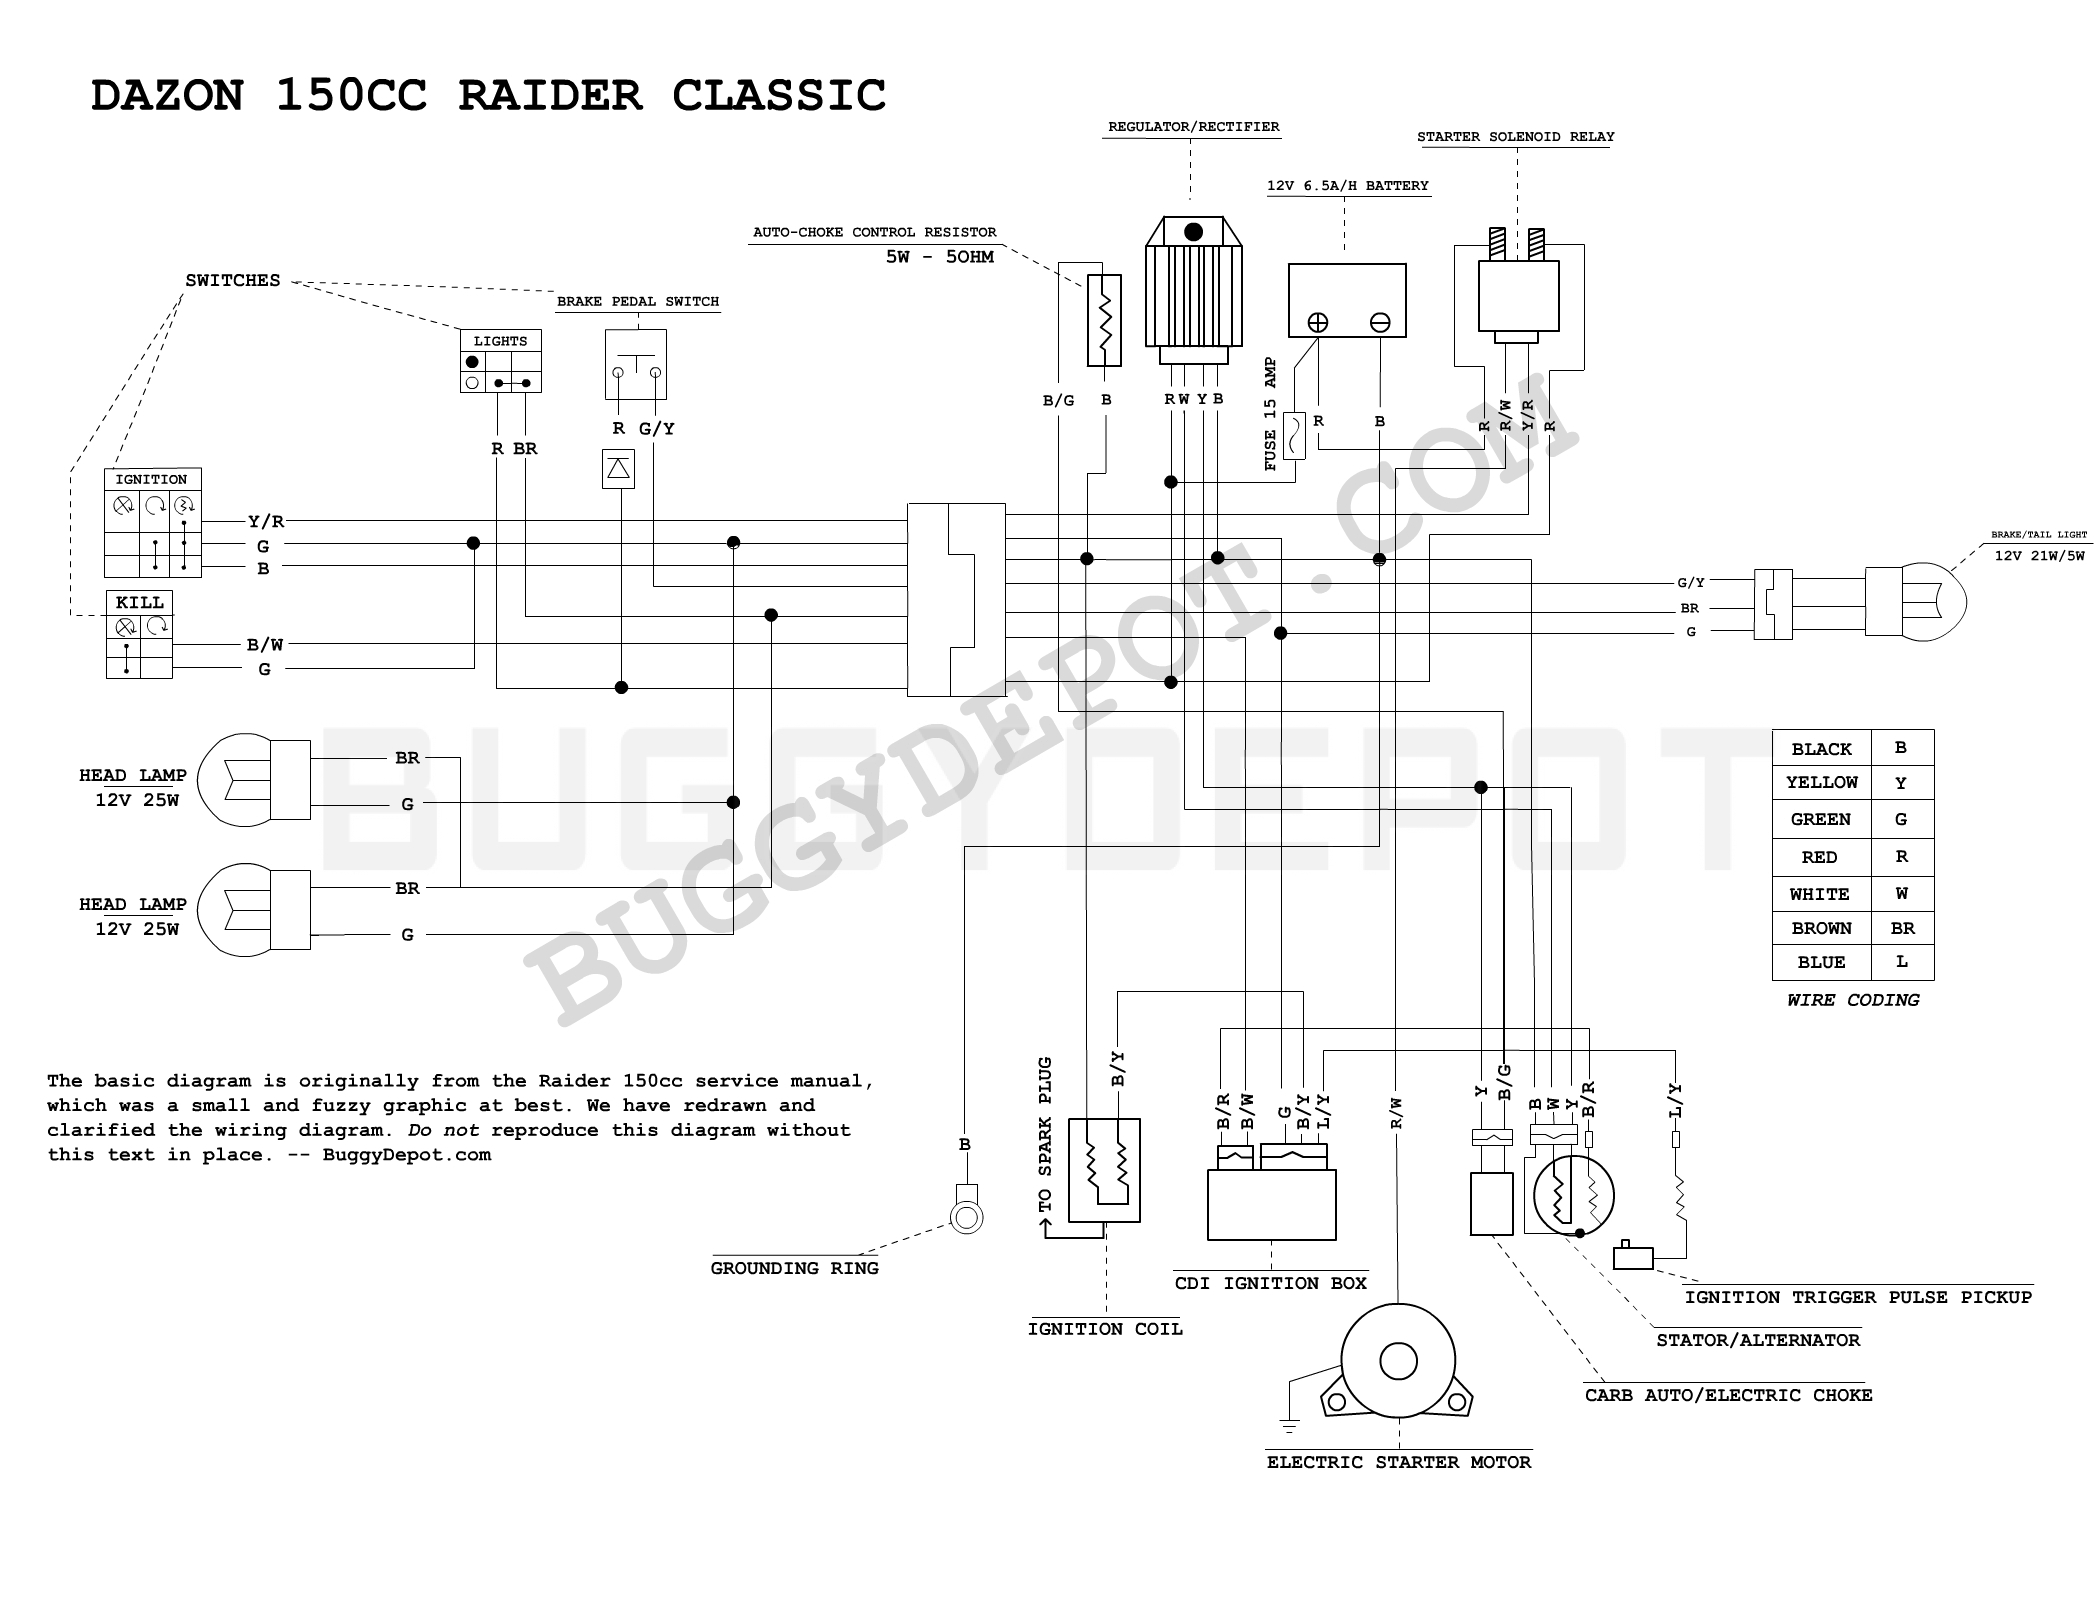 article_33_1278205207 vip scooter wiring diagram qmb139 electrical wiring diagram Siemens 540 100 Wiring Diagrams at soozxer.org